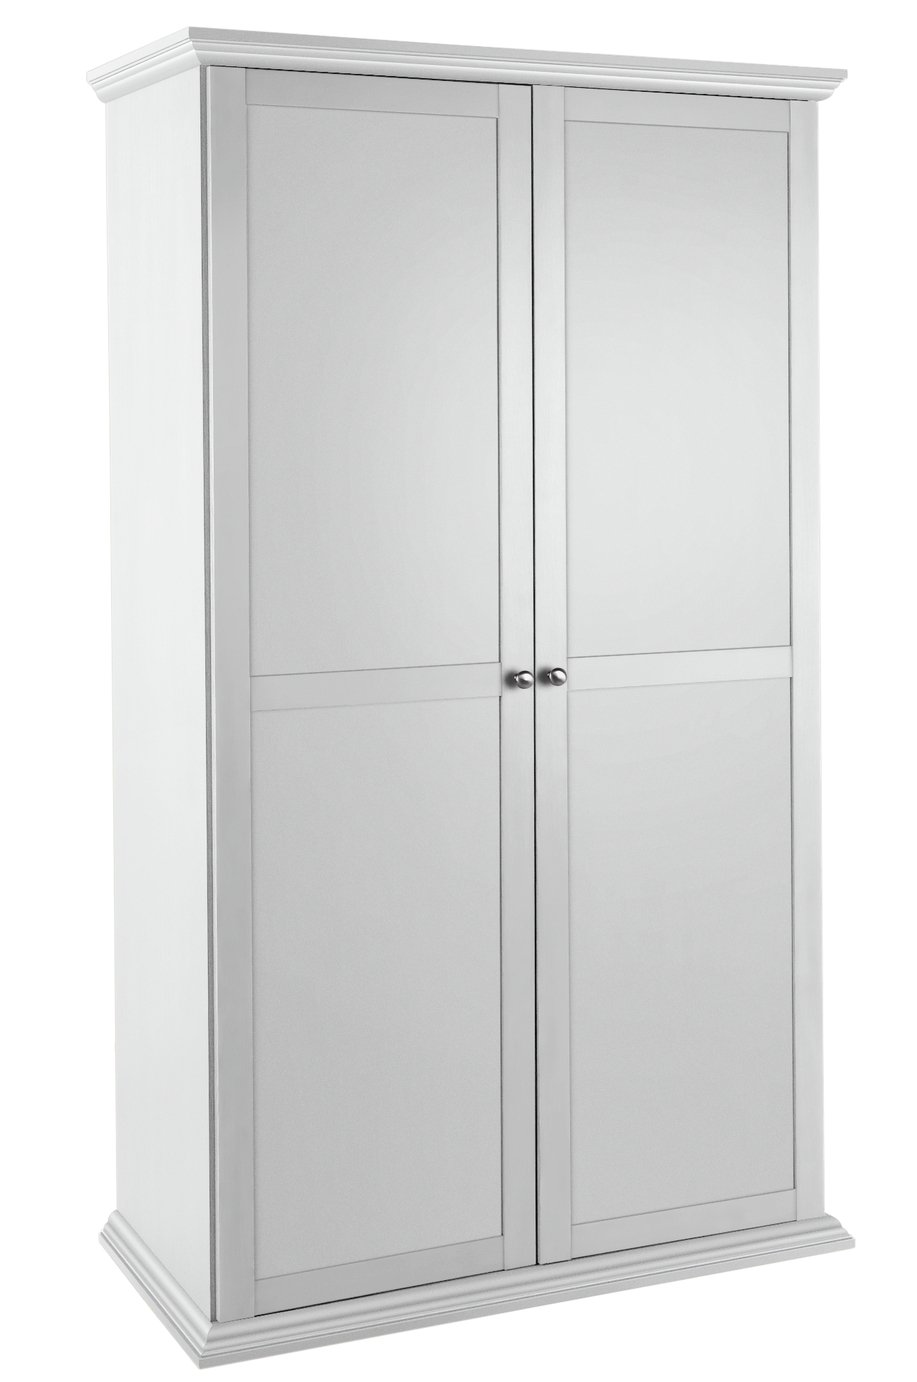 Argos Home Canterbury 2 Door Wardrobe - White